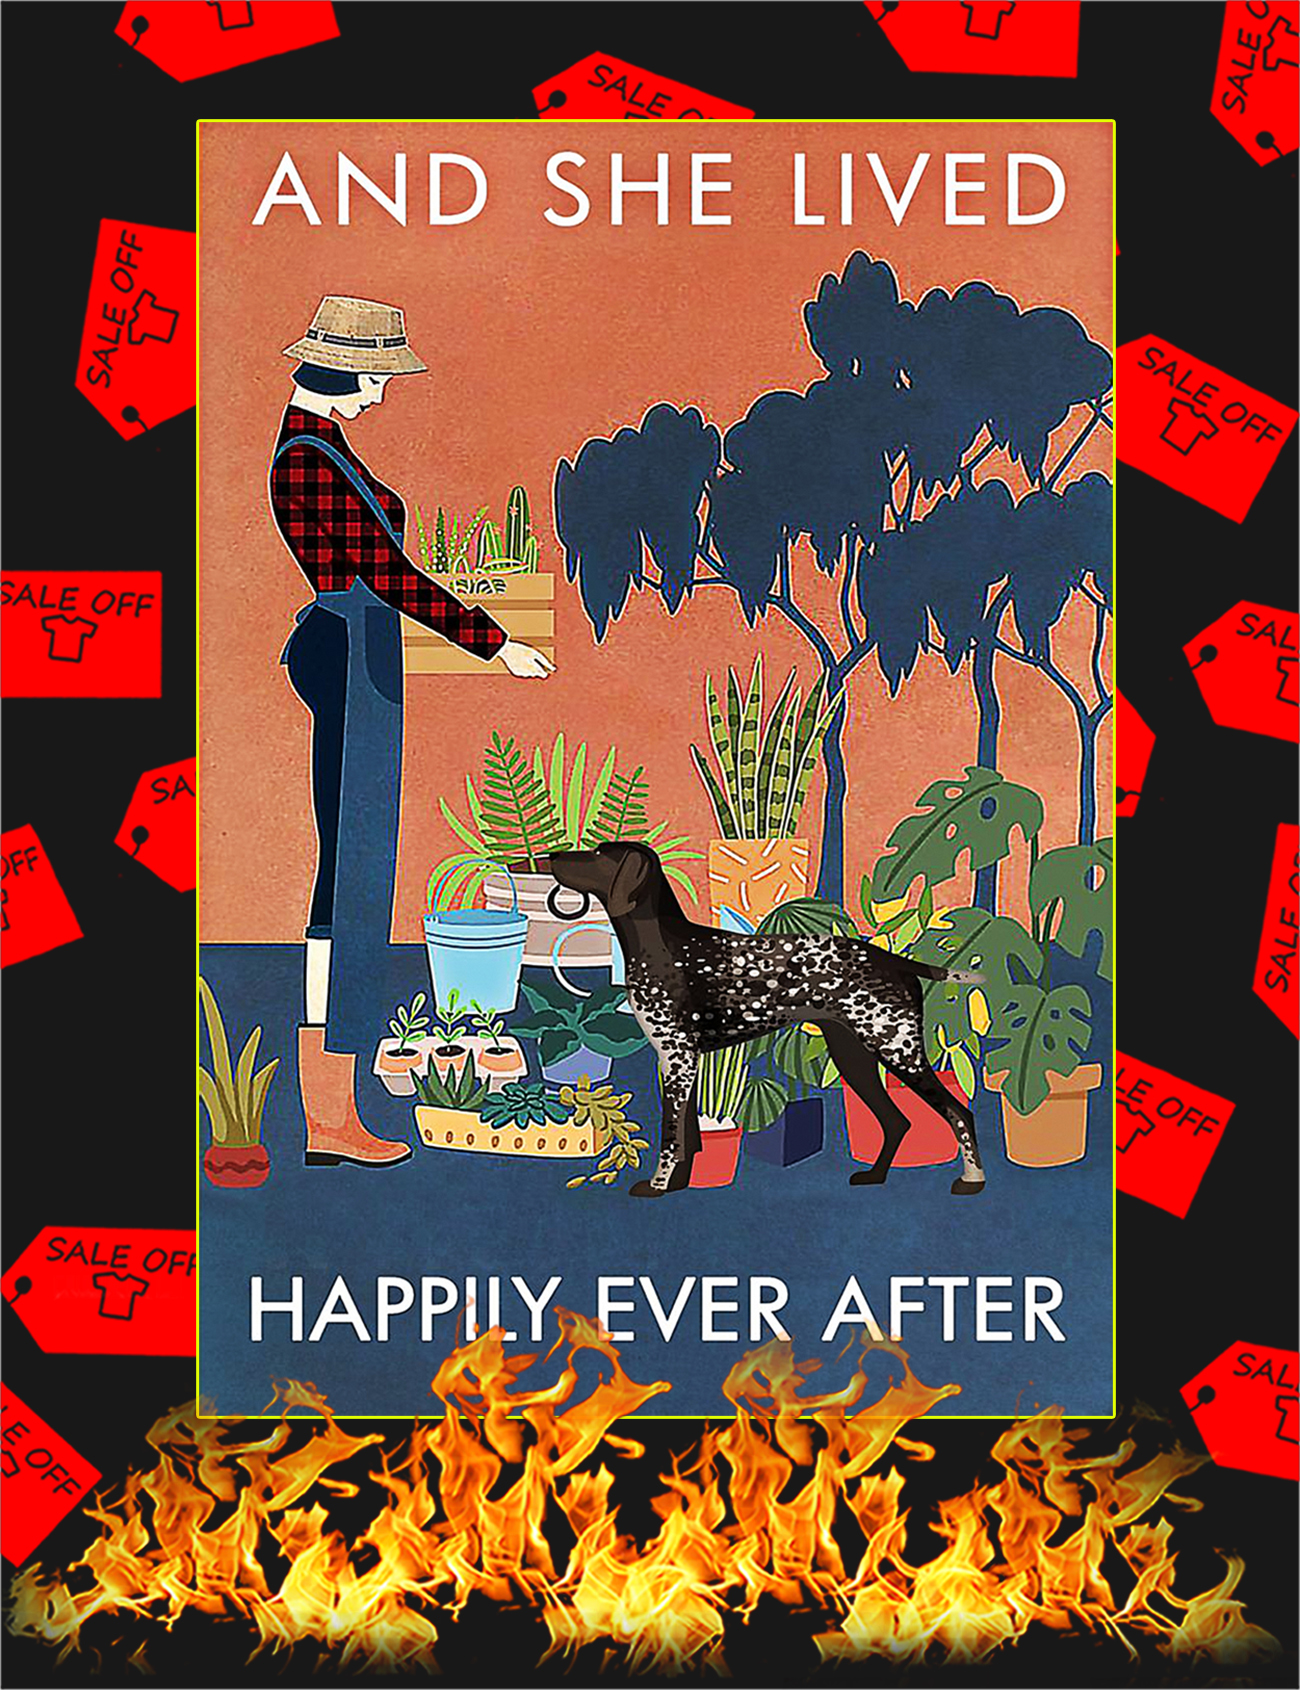 German Shorthaired Pointer And she lived happily ever after poster - A1